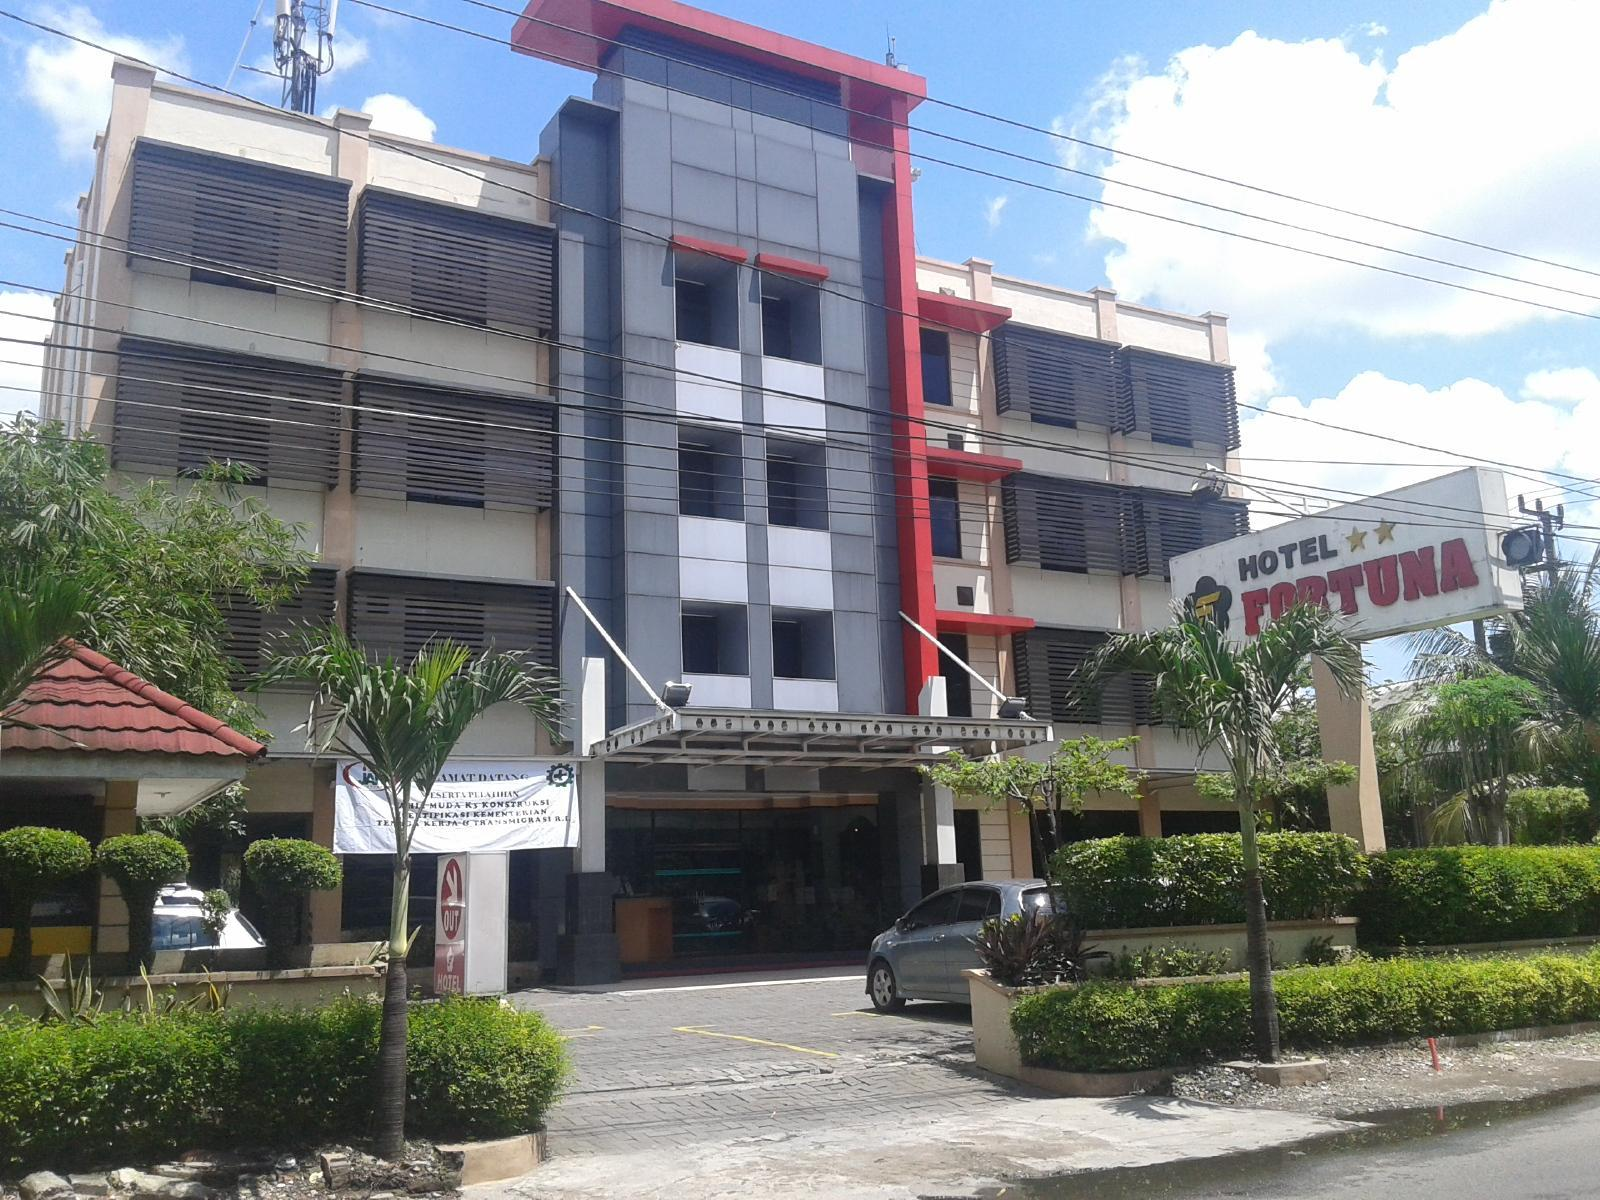 Hotel Fortuna - Hotels and Accommodation in Indonesia, Asia